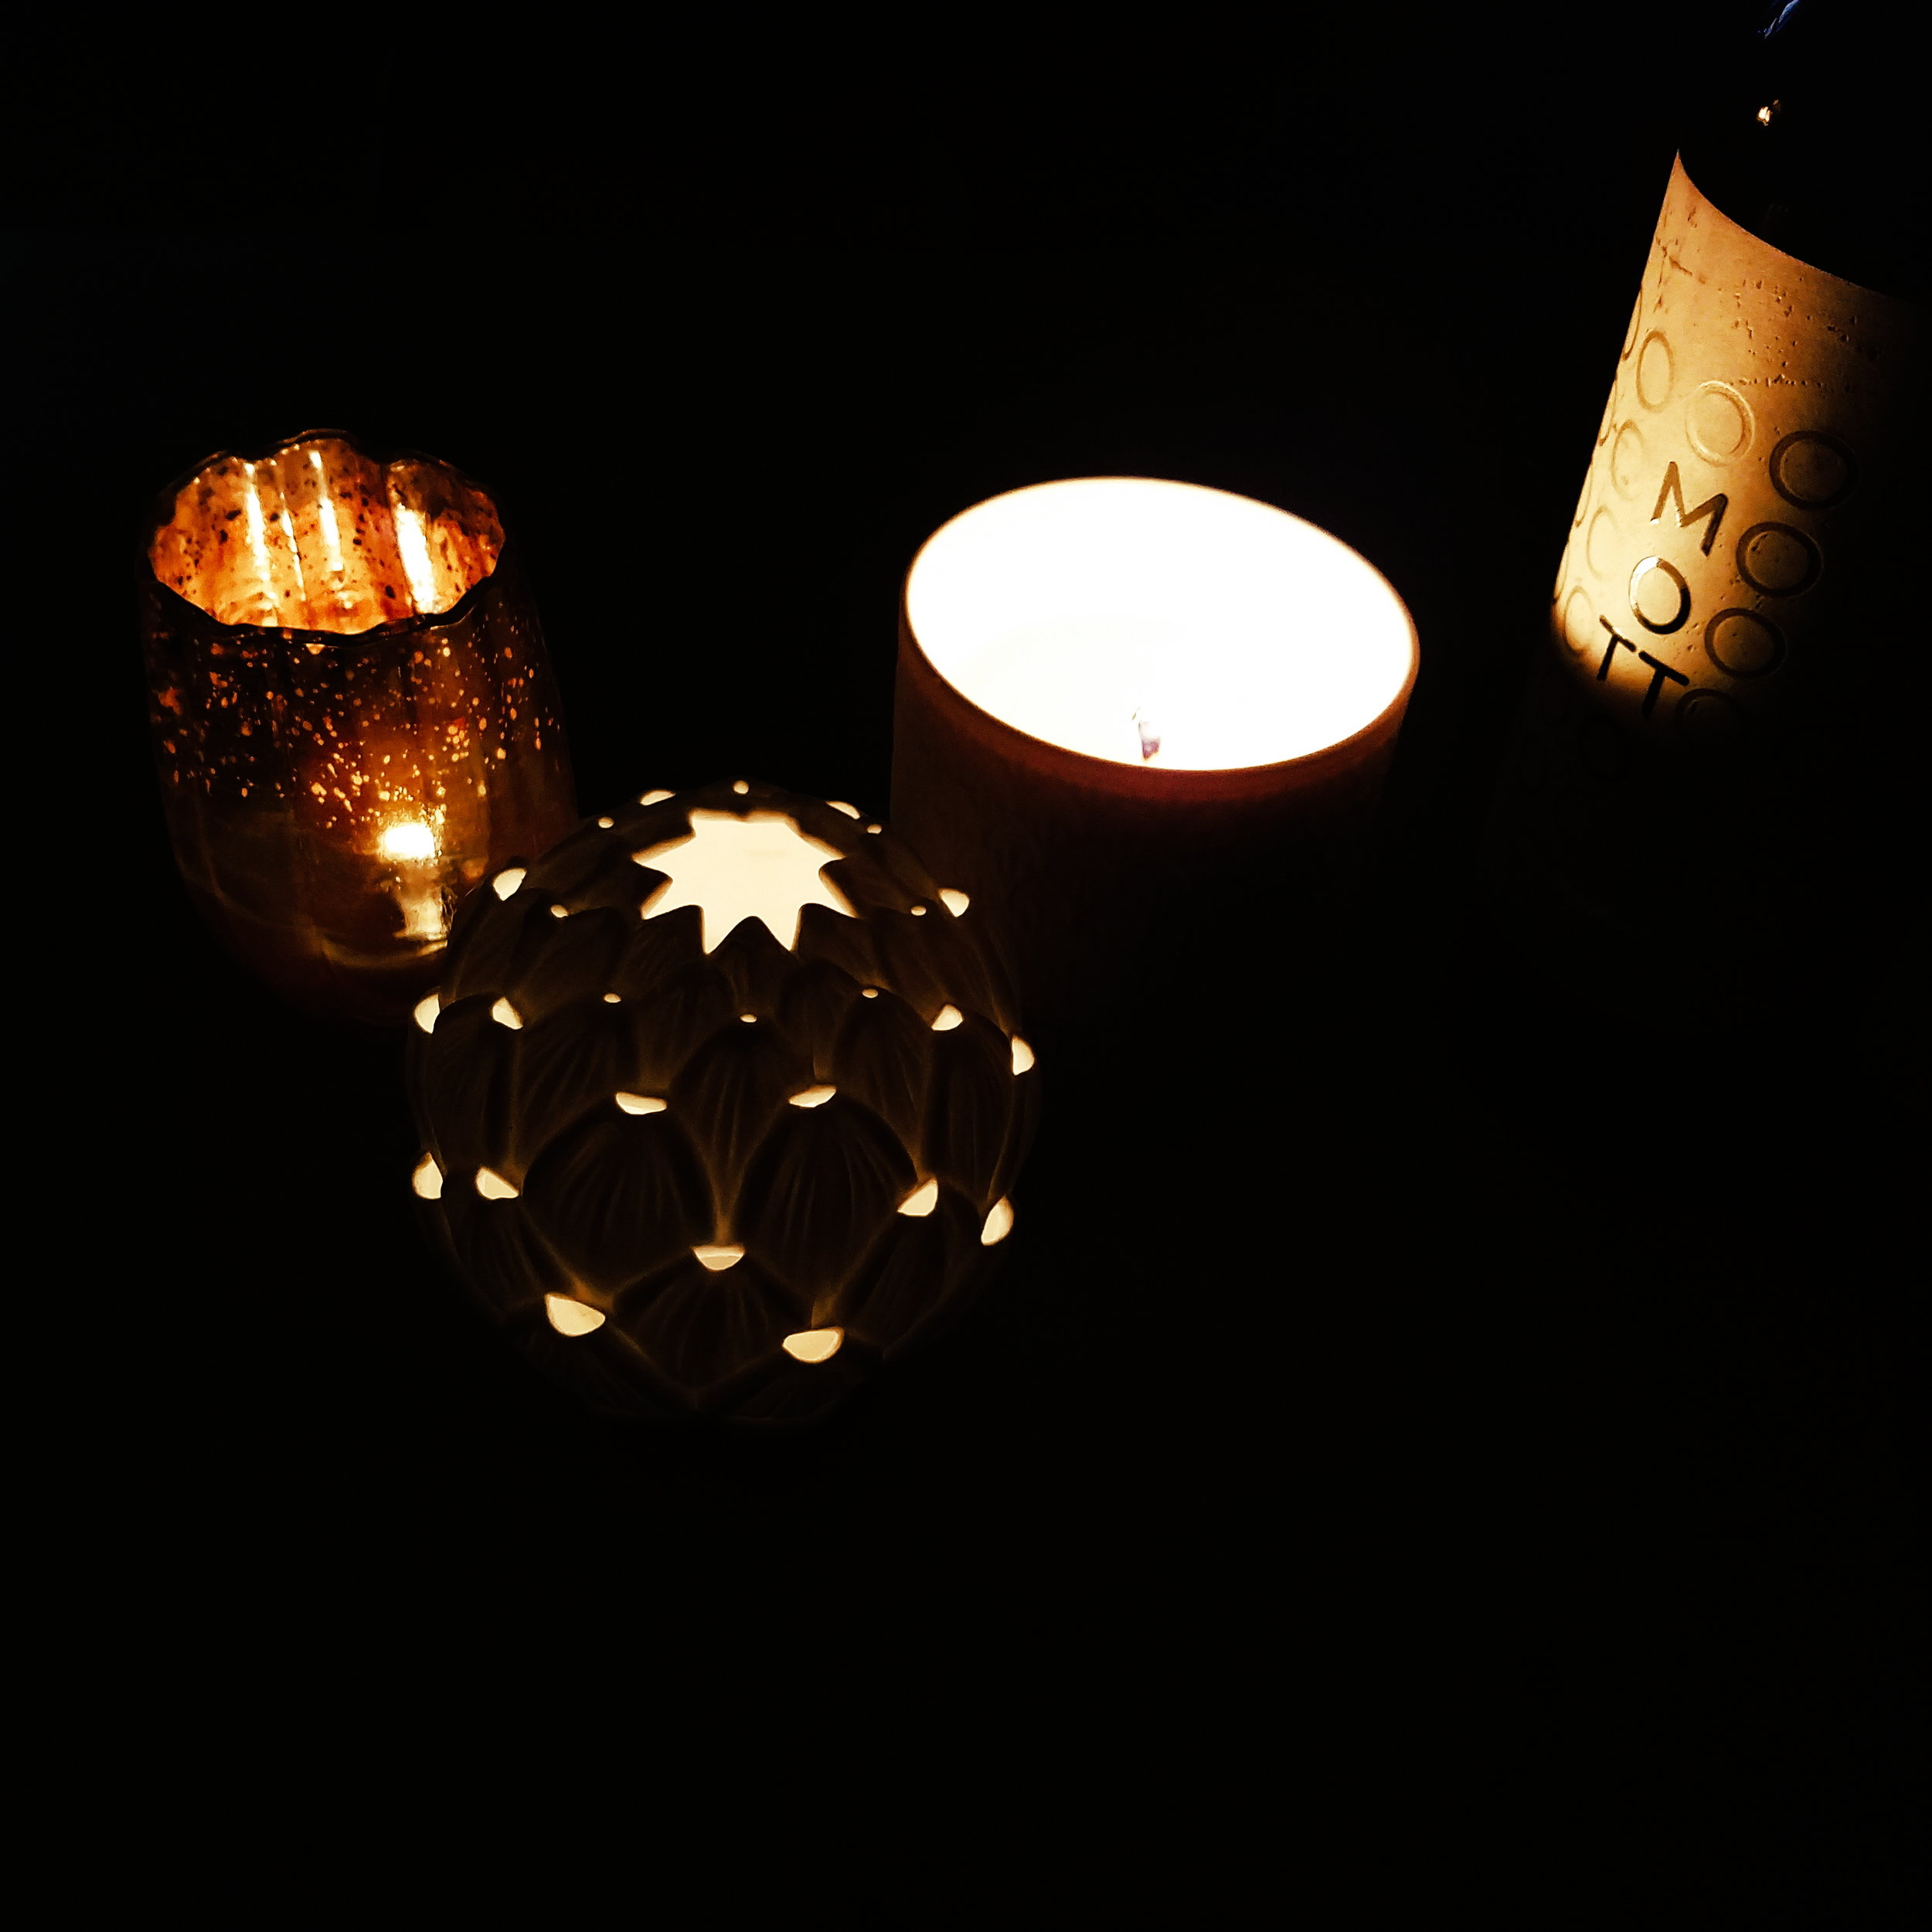 Already relying on candles to get me through the long dark fall evenings!